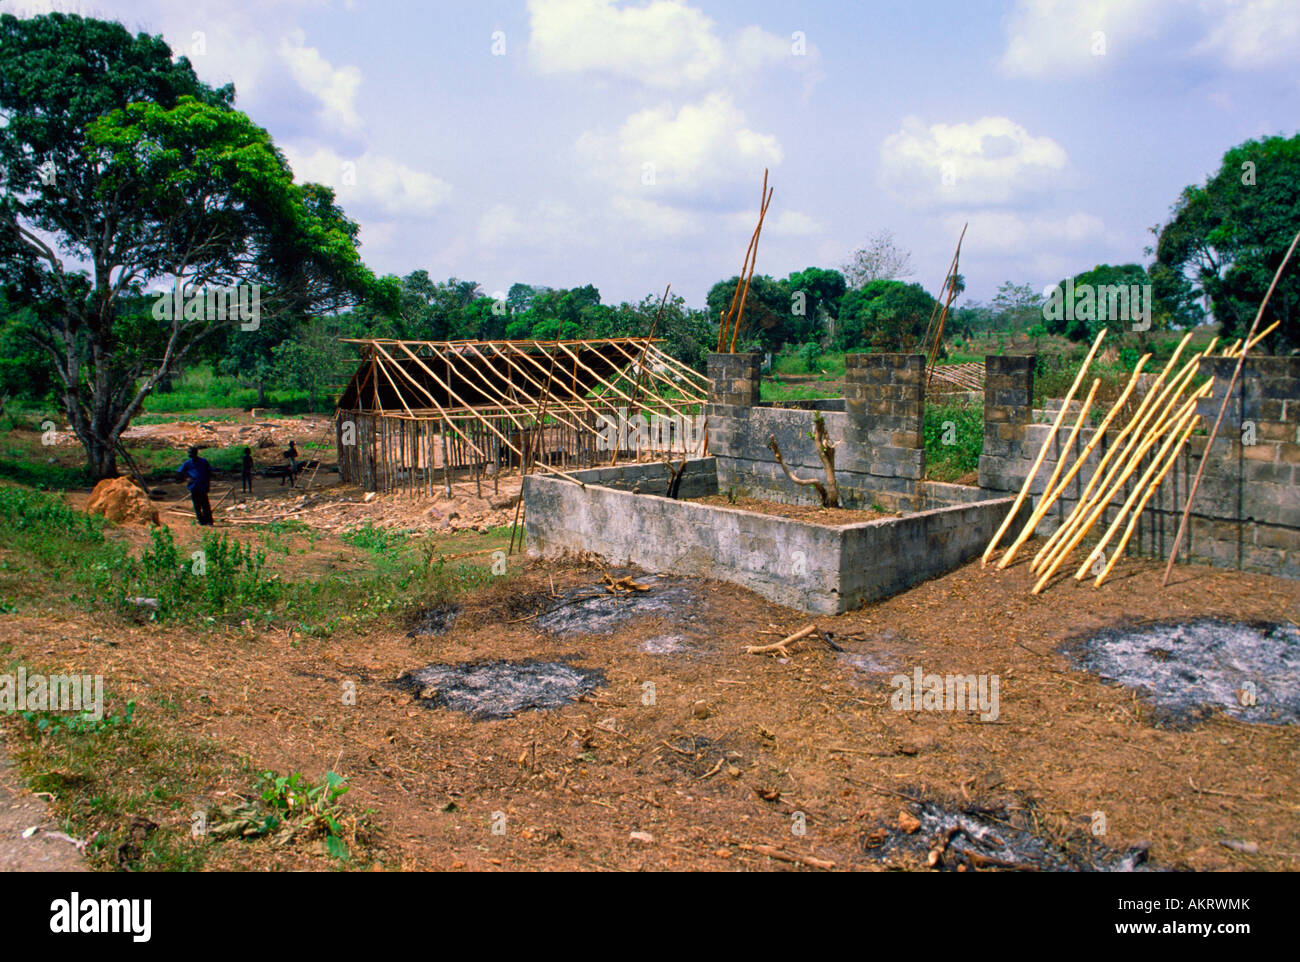 Housing reconstruction in the aftermath of civil war Zwedru Liberia - Stock Image